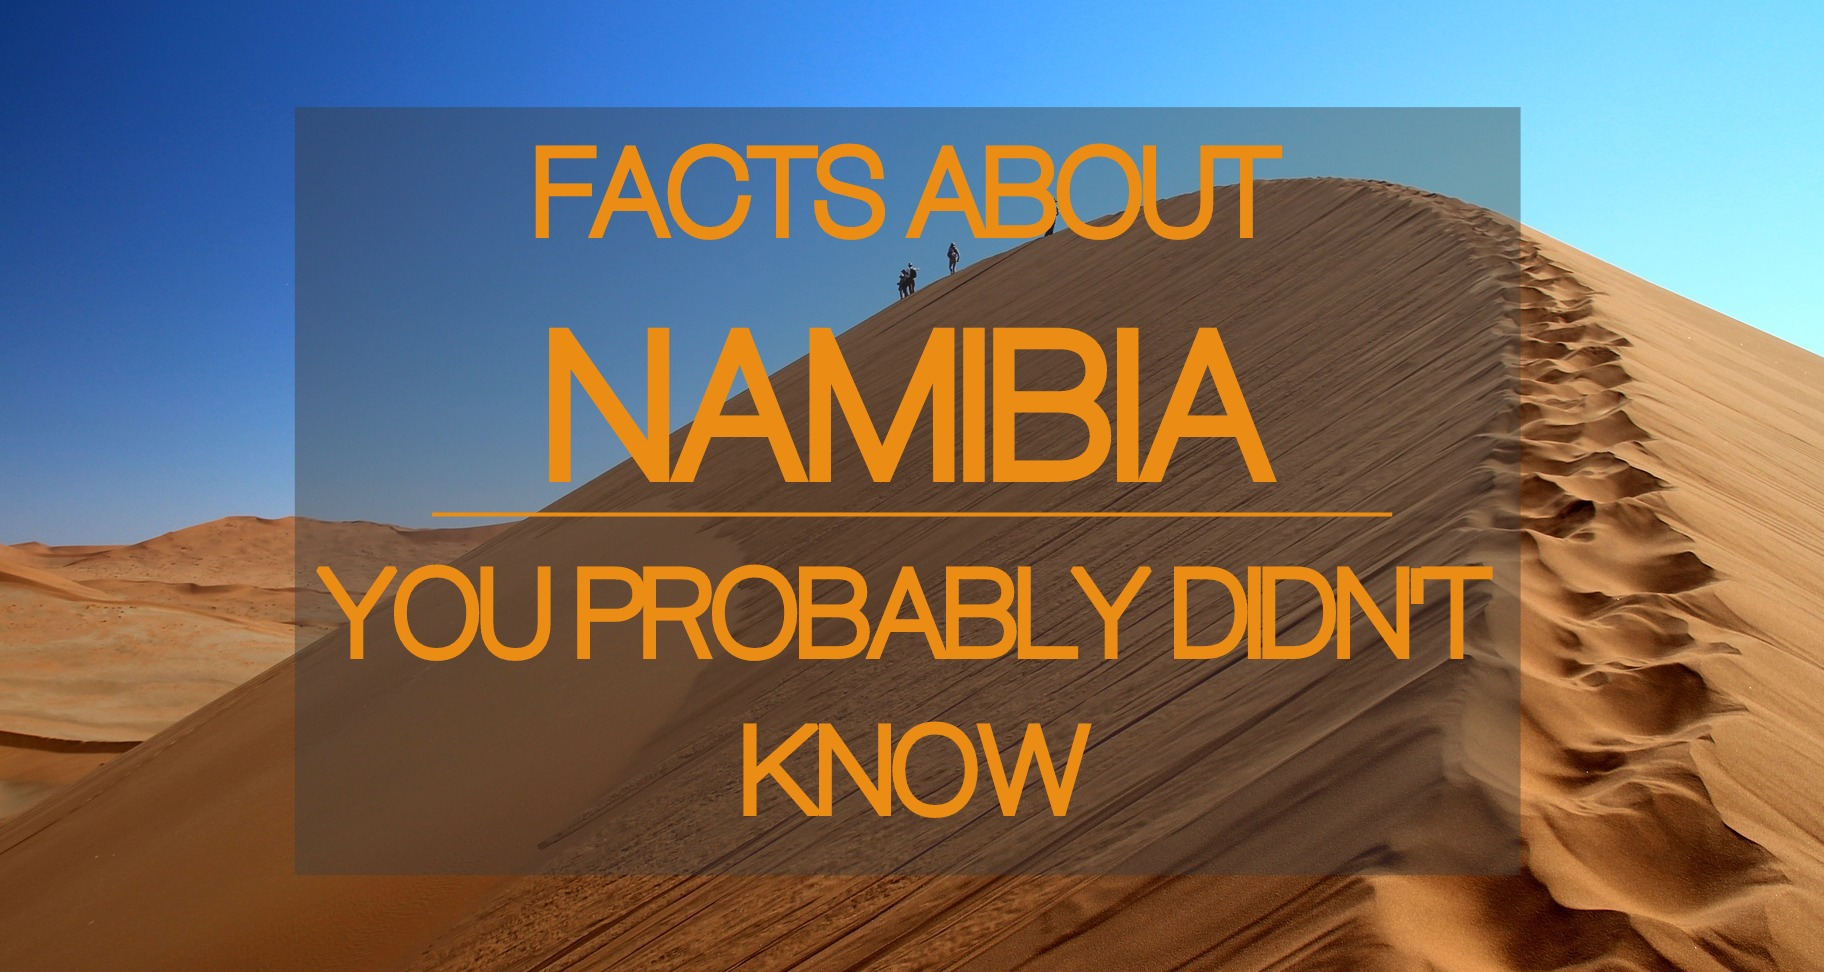 Facts About Namibia You Probably Didn't Know - Tusk Photo